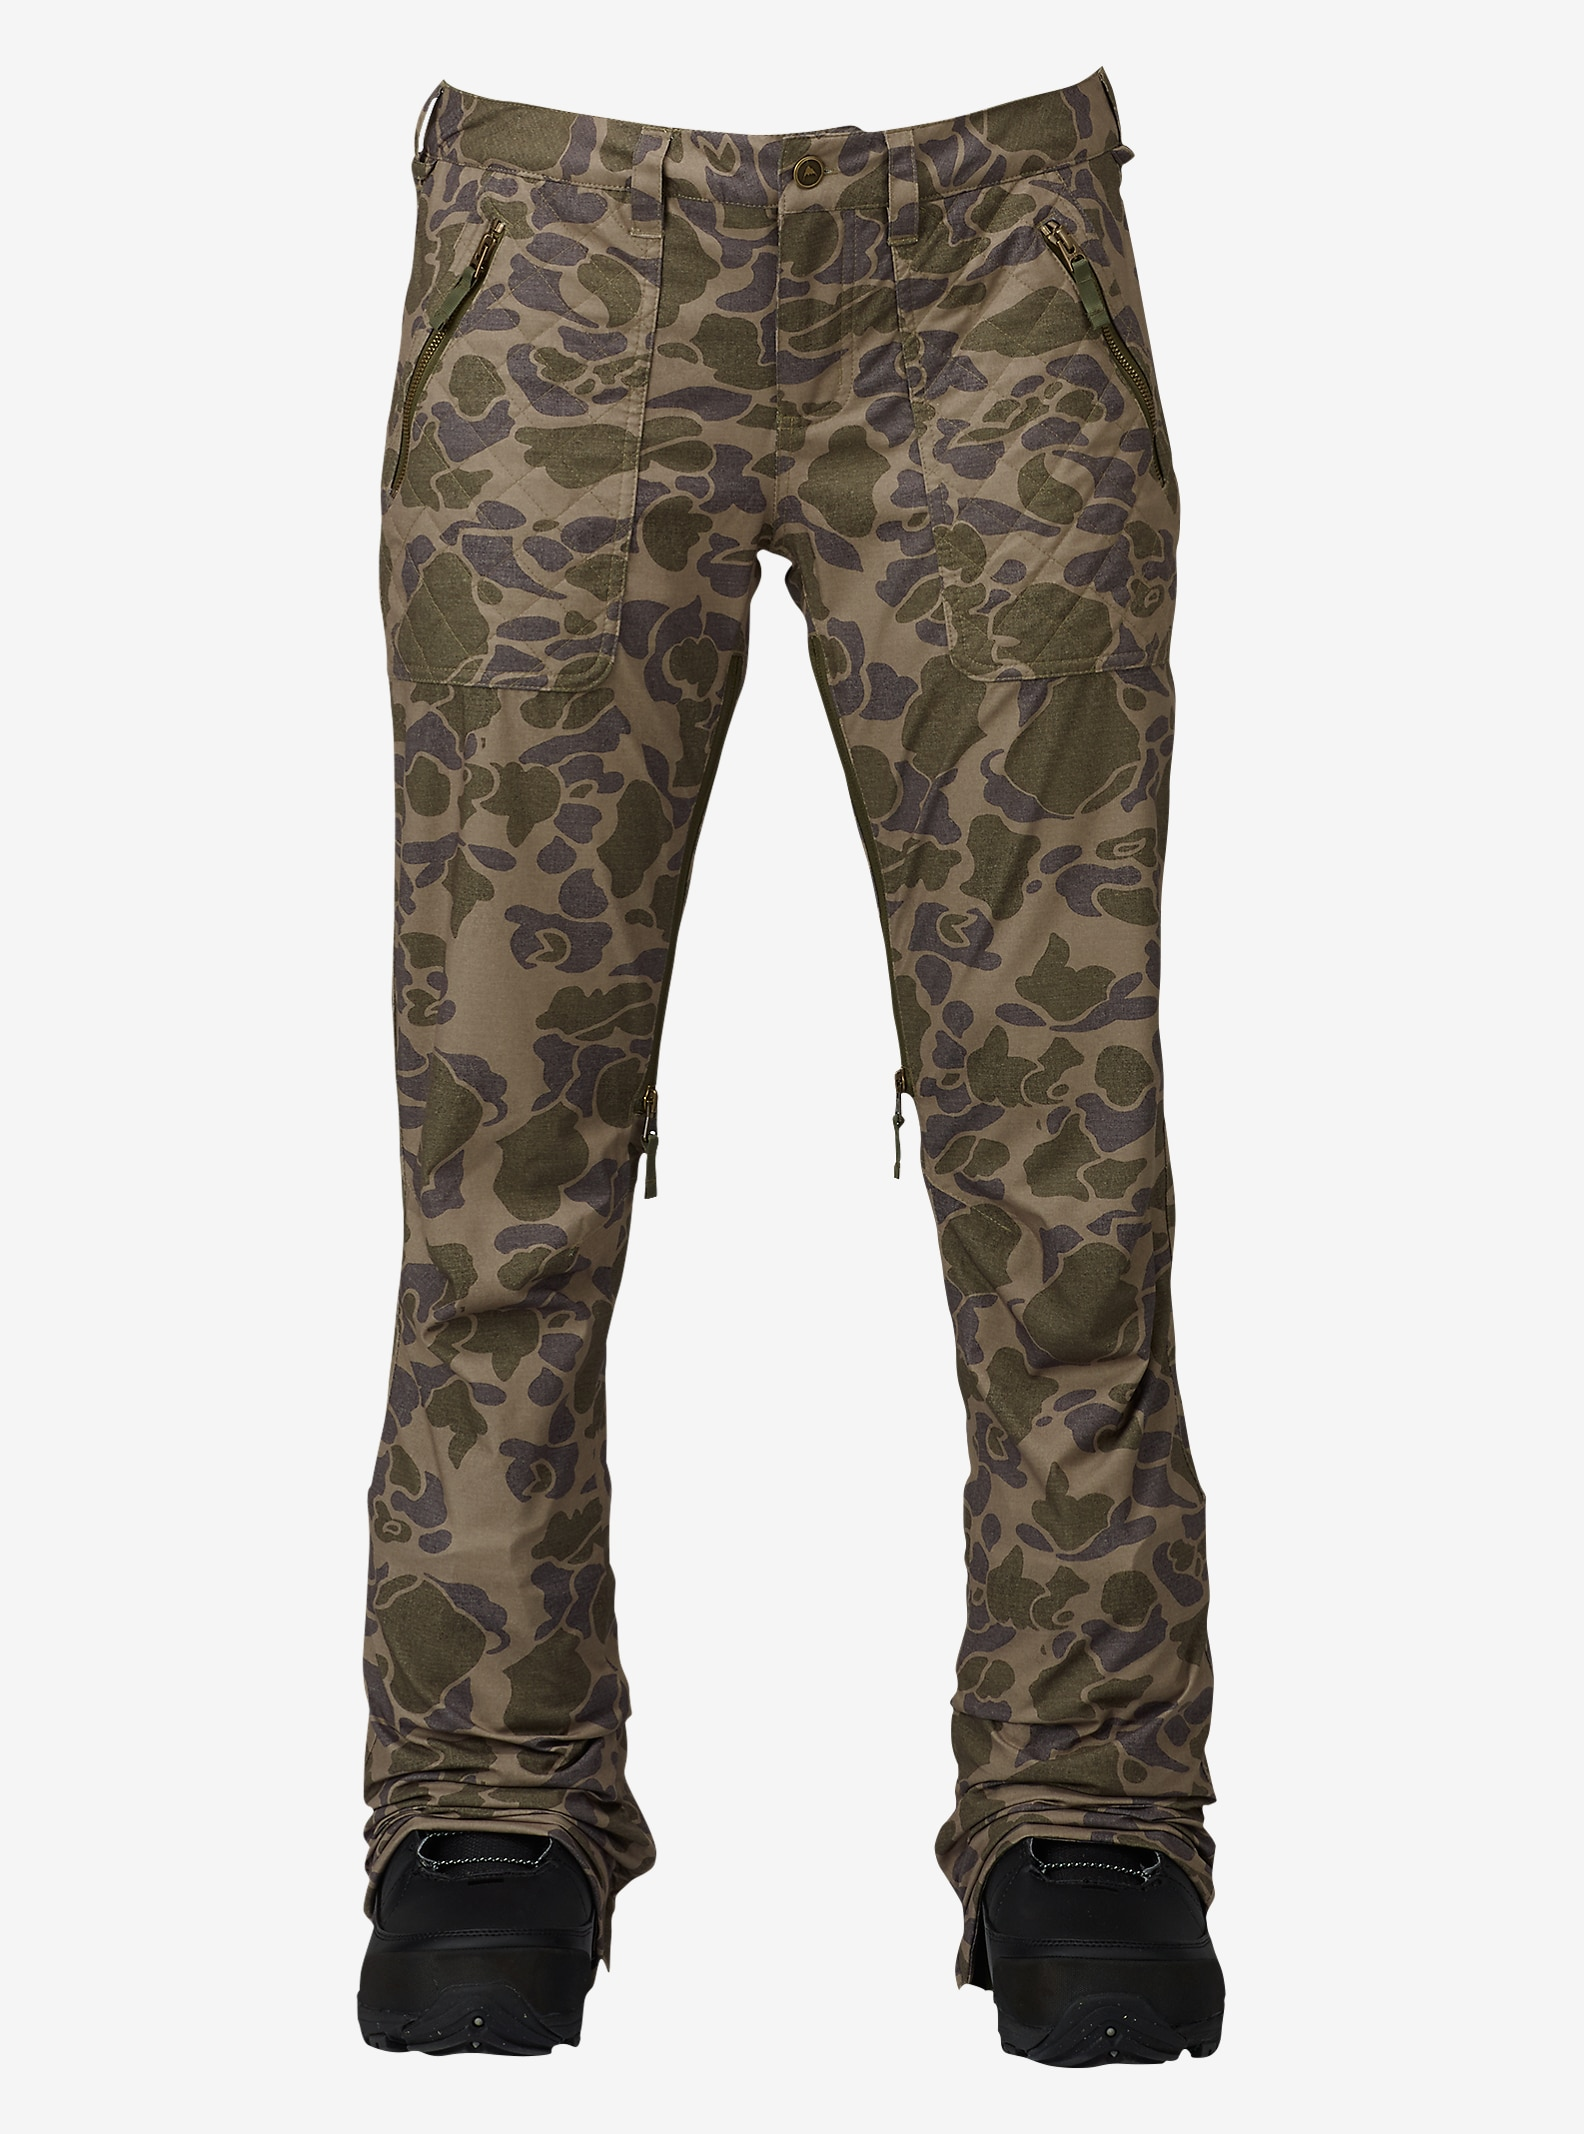 Burton Vida Pant shown in Petal Camo